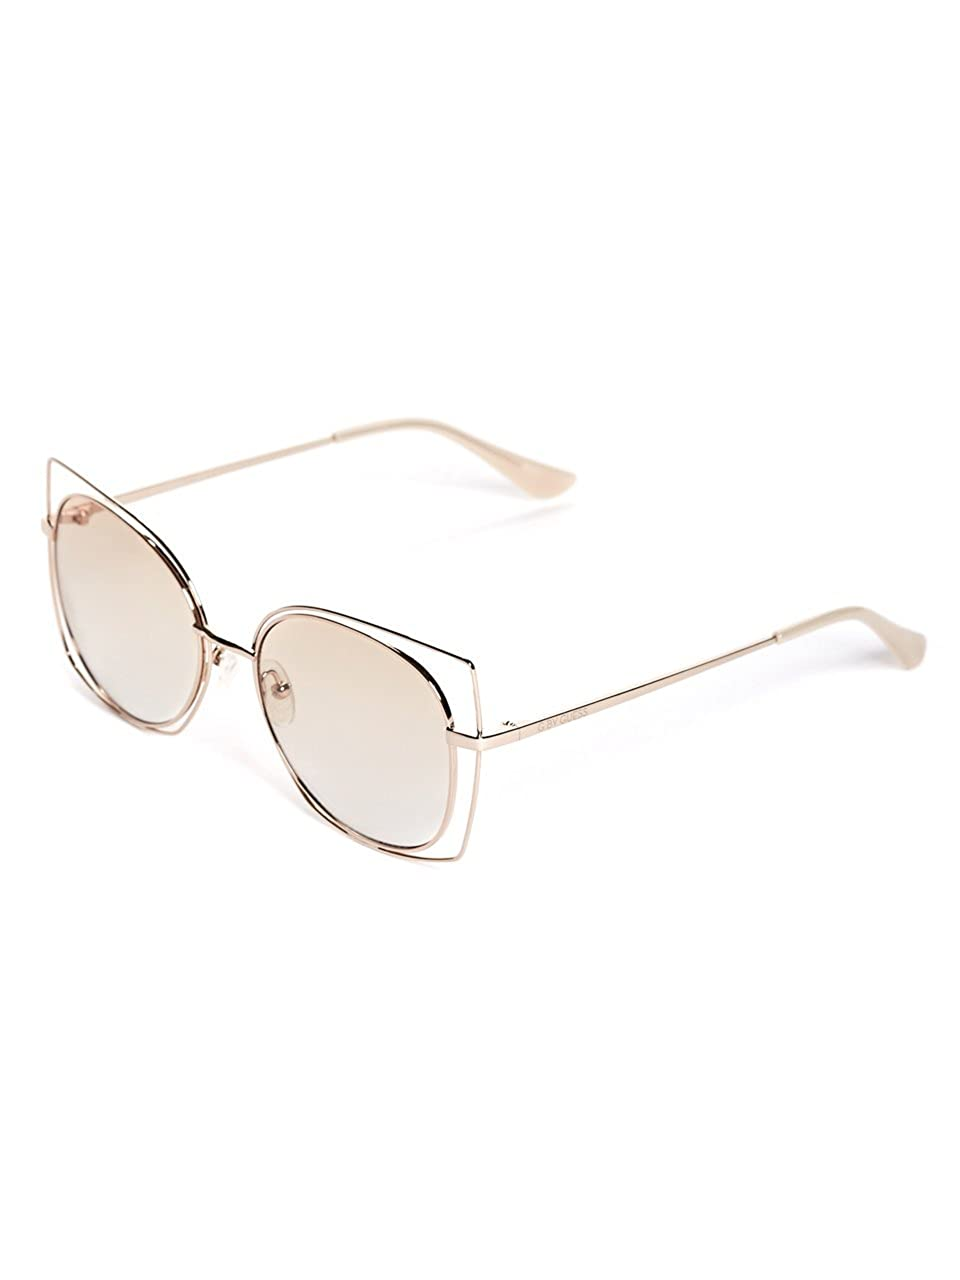 aaf3416f3 G by GUESS Women's Rounded Geometric Sunglasses at Amazon Women's Clothing  store: